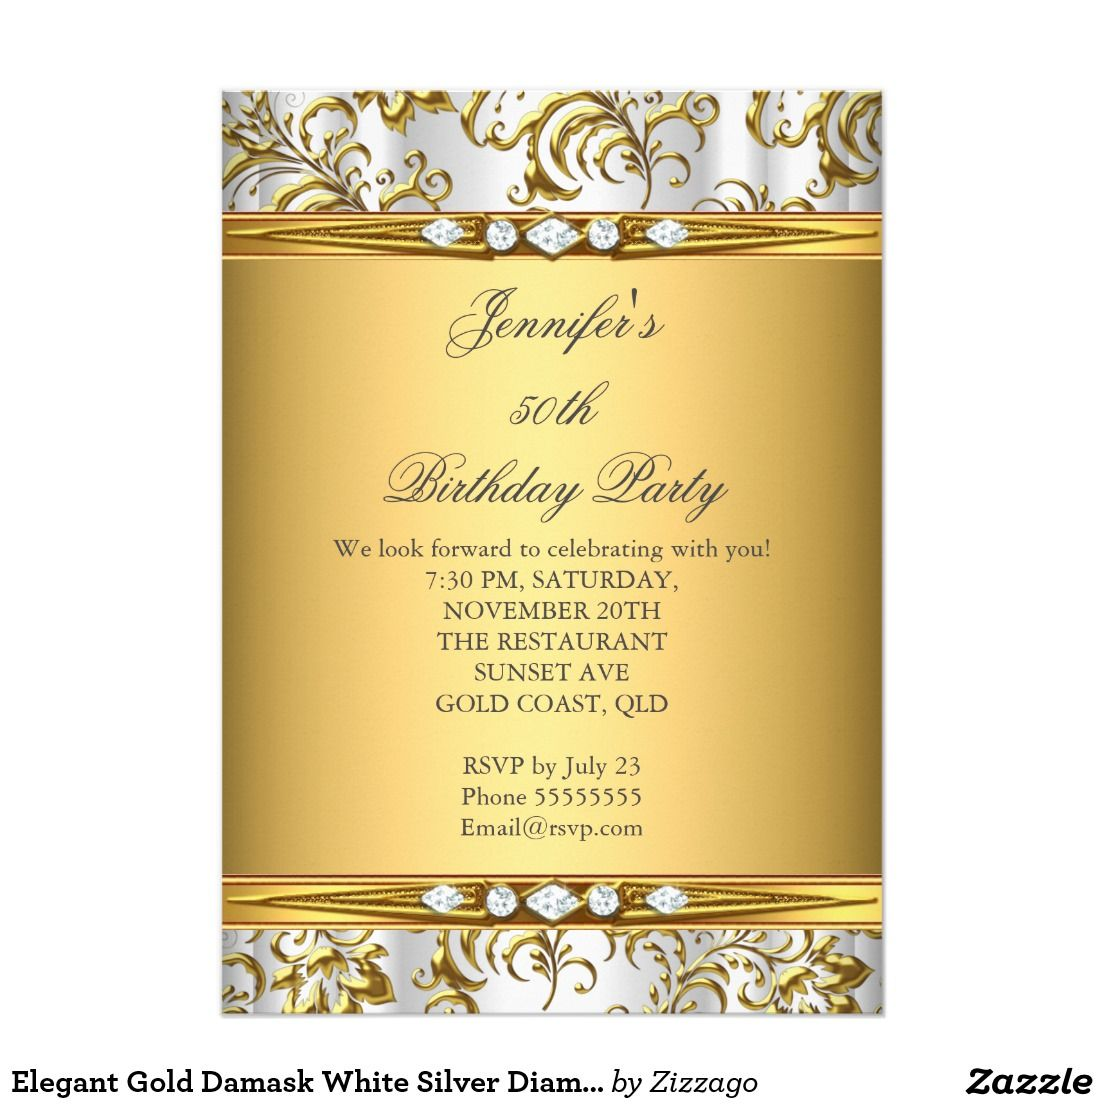 Elegant Gold Damask White Silver Diamond Birthday Card Silver